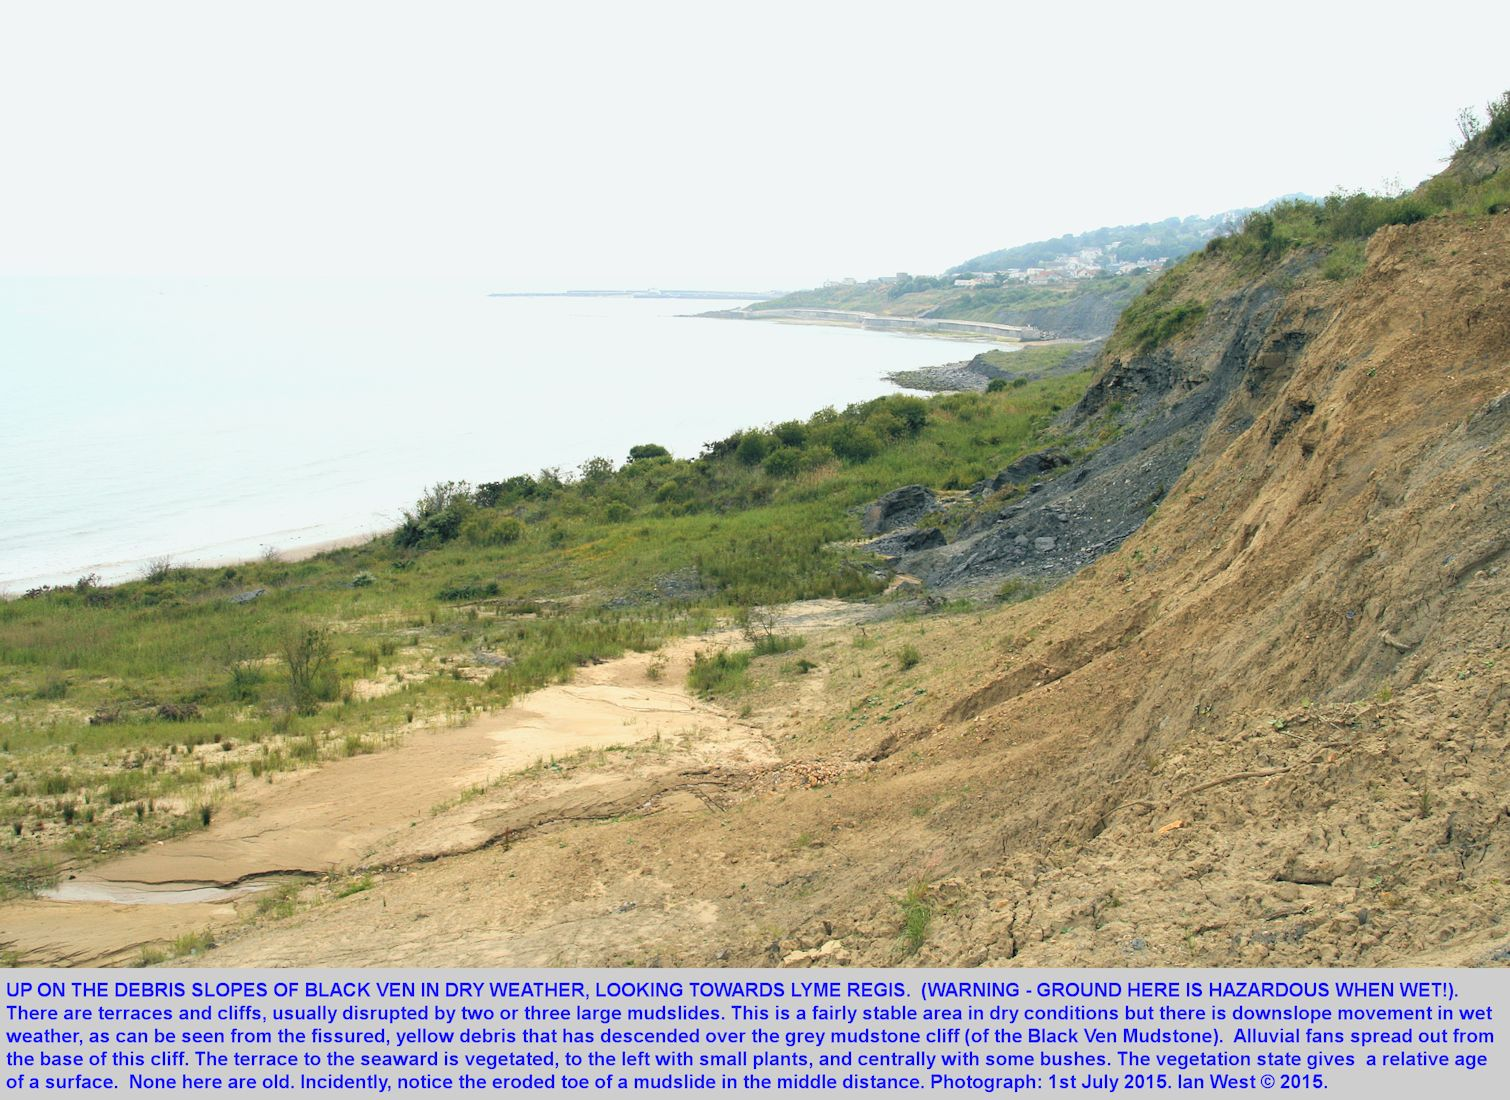 On the Black Ven Marl cliff and associated terraces of the Black Ven landslide and mudslide complex, about half-way between Lyme Regis and Charmouth, Dorset, 1st June 2015